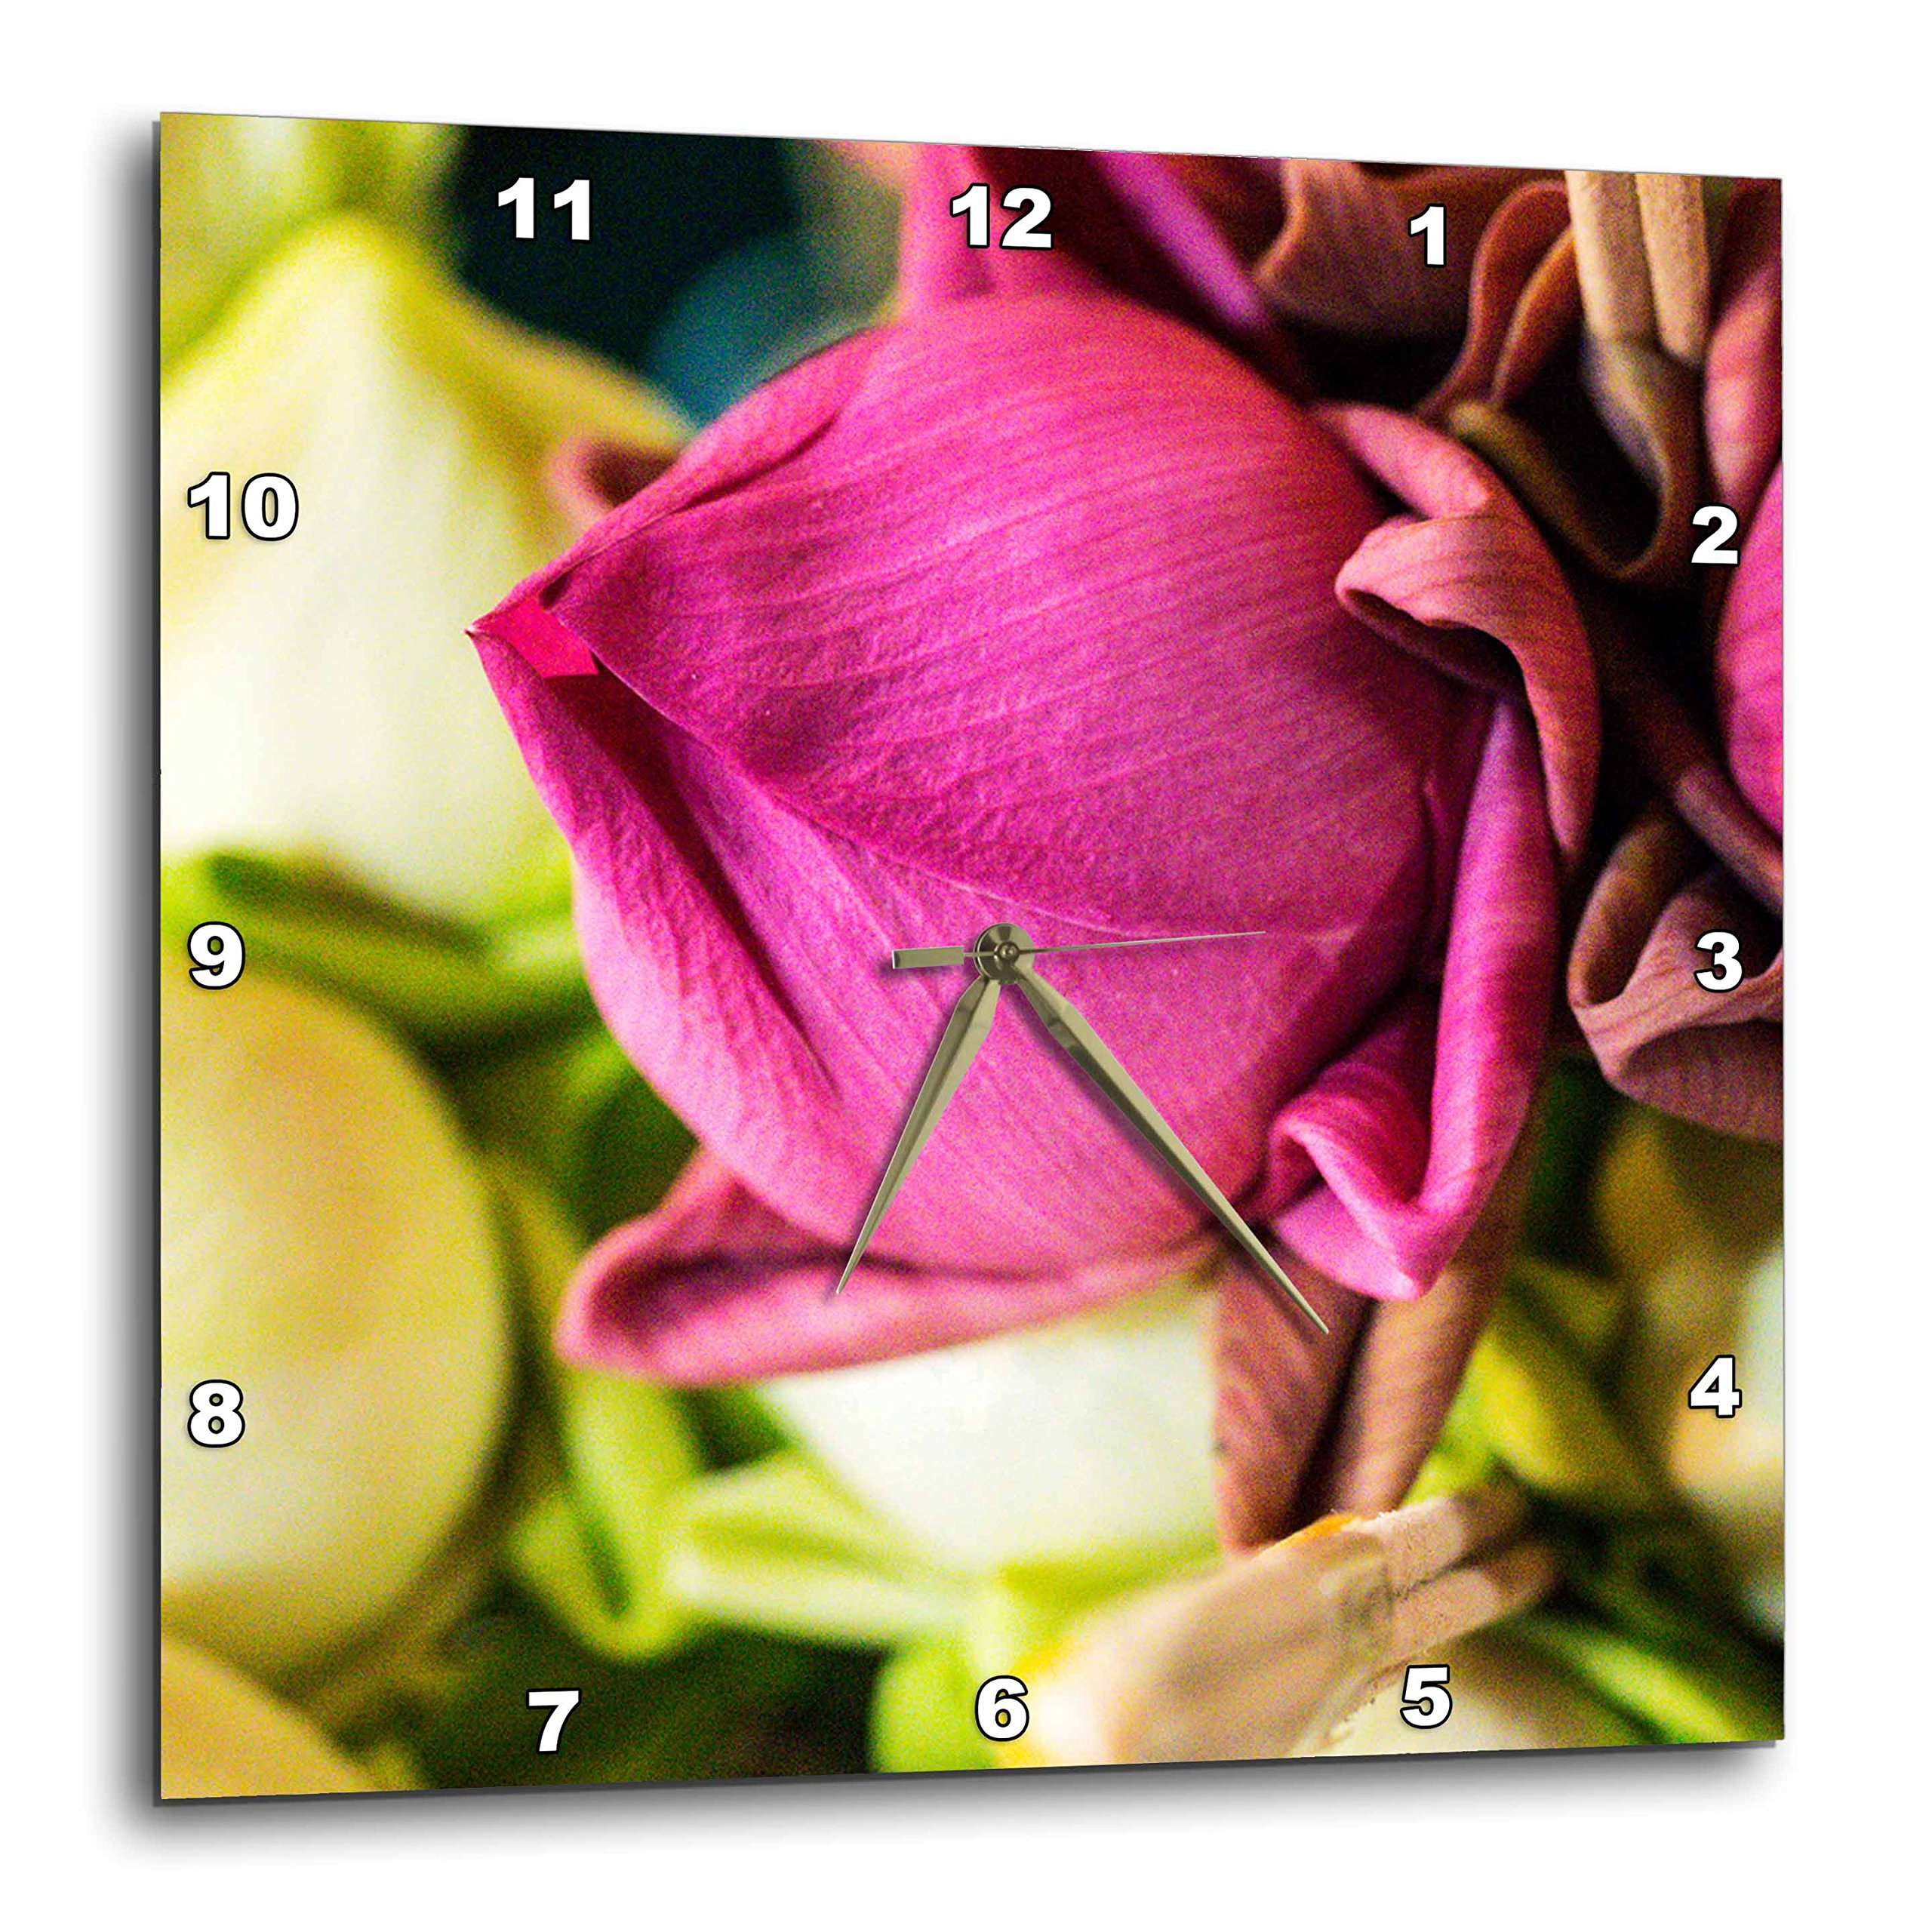 3dRose Danita Delimont - Flowers - Thailand, Chiang Mai, Flowers at the Thai Market Place - 15x15 Wall Clock (dpp_276974_3) by 3dRose